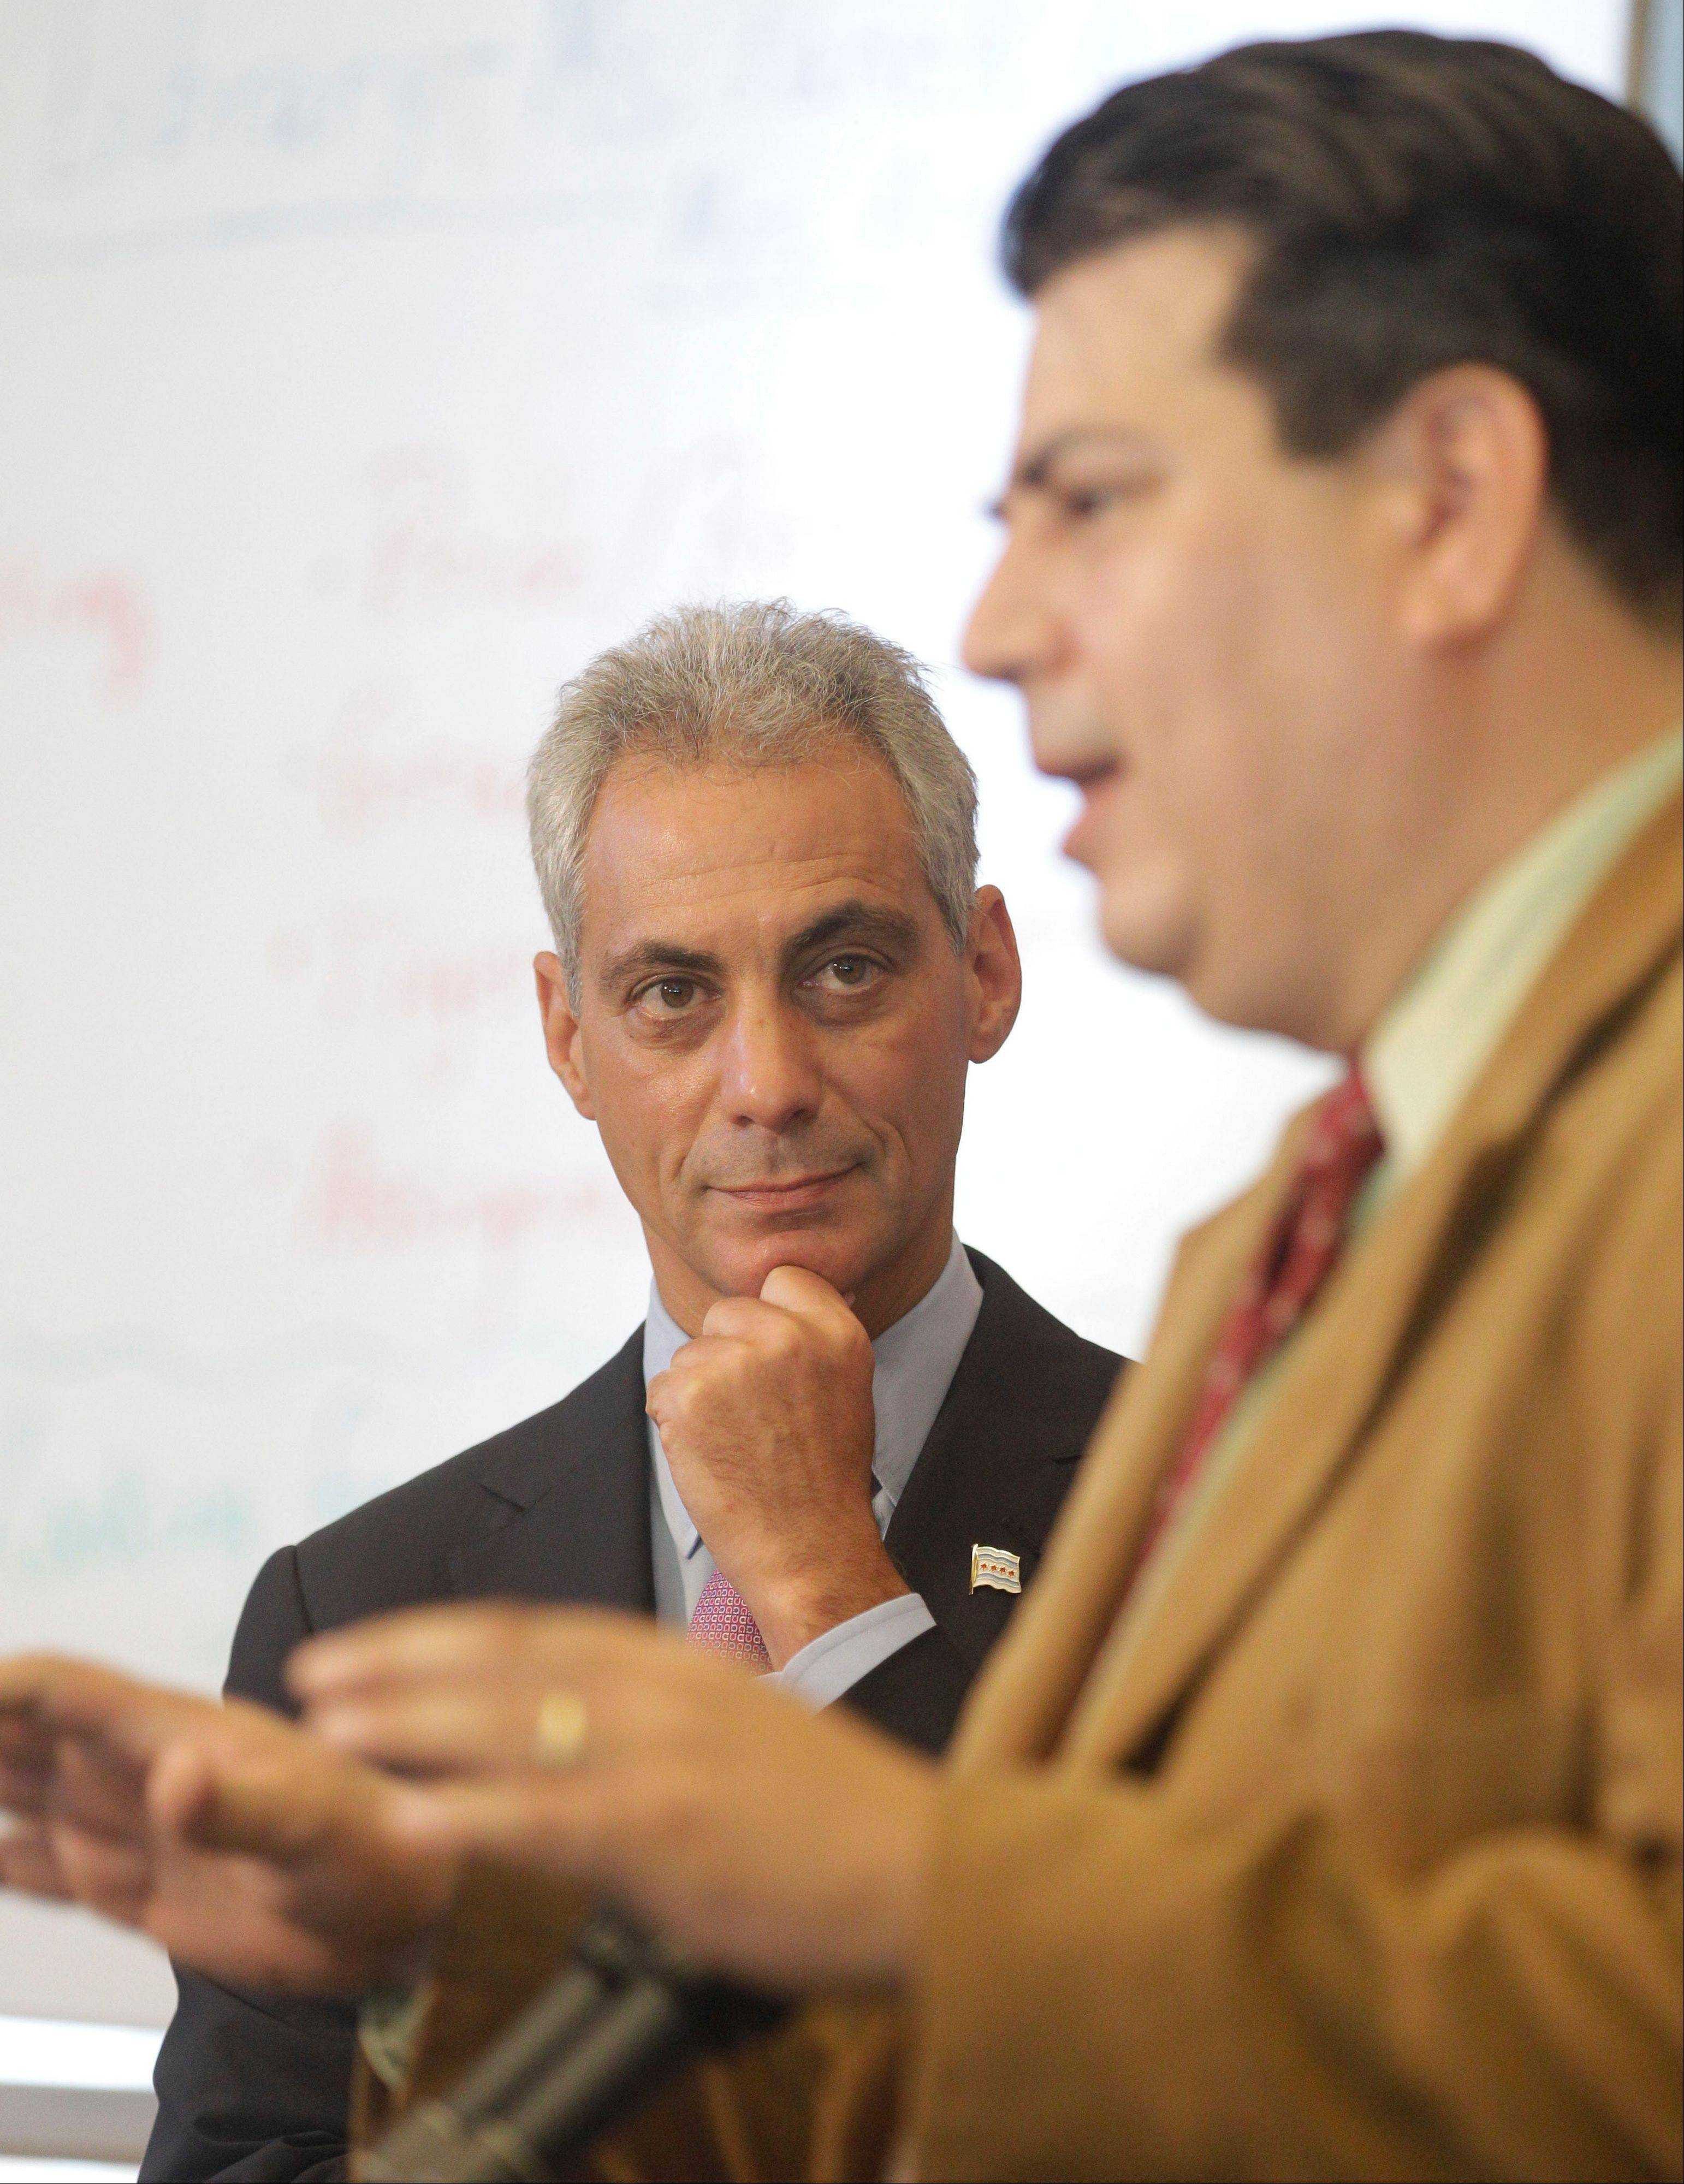 Chicago Mayor Rahm Emanuel listens during a news conference as Vincent Iturralde, principal of Tarkington School of Excellence, speaks Tuesday. Negotiations continue on the second day of a strike in the nation's third-largest school district.